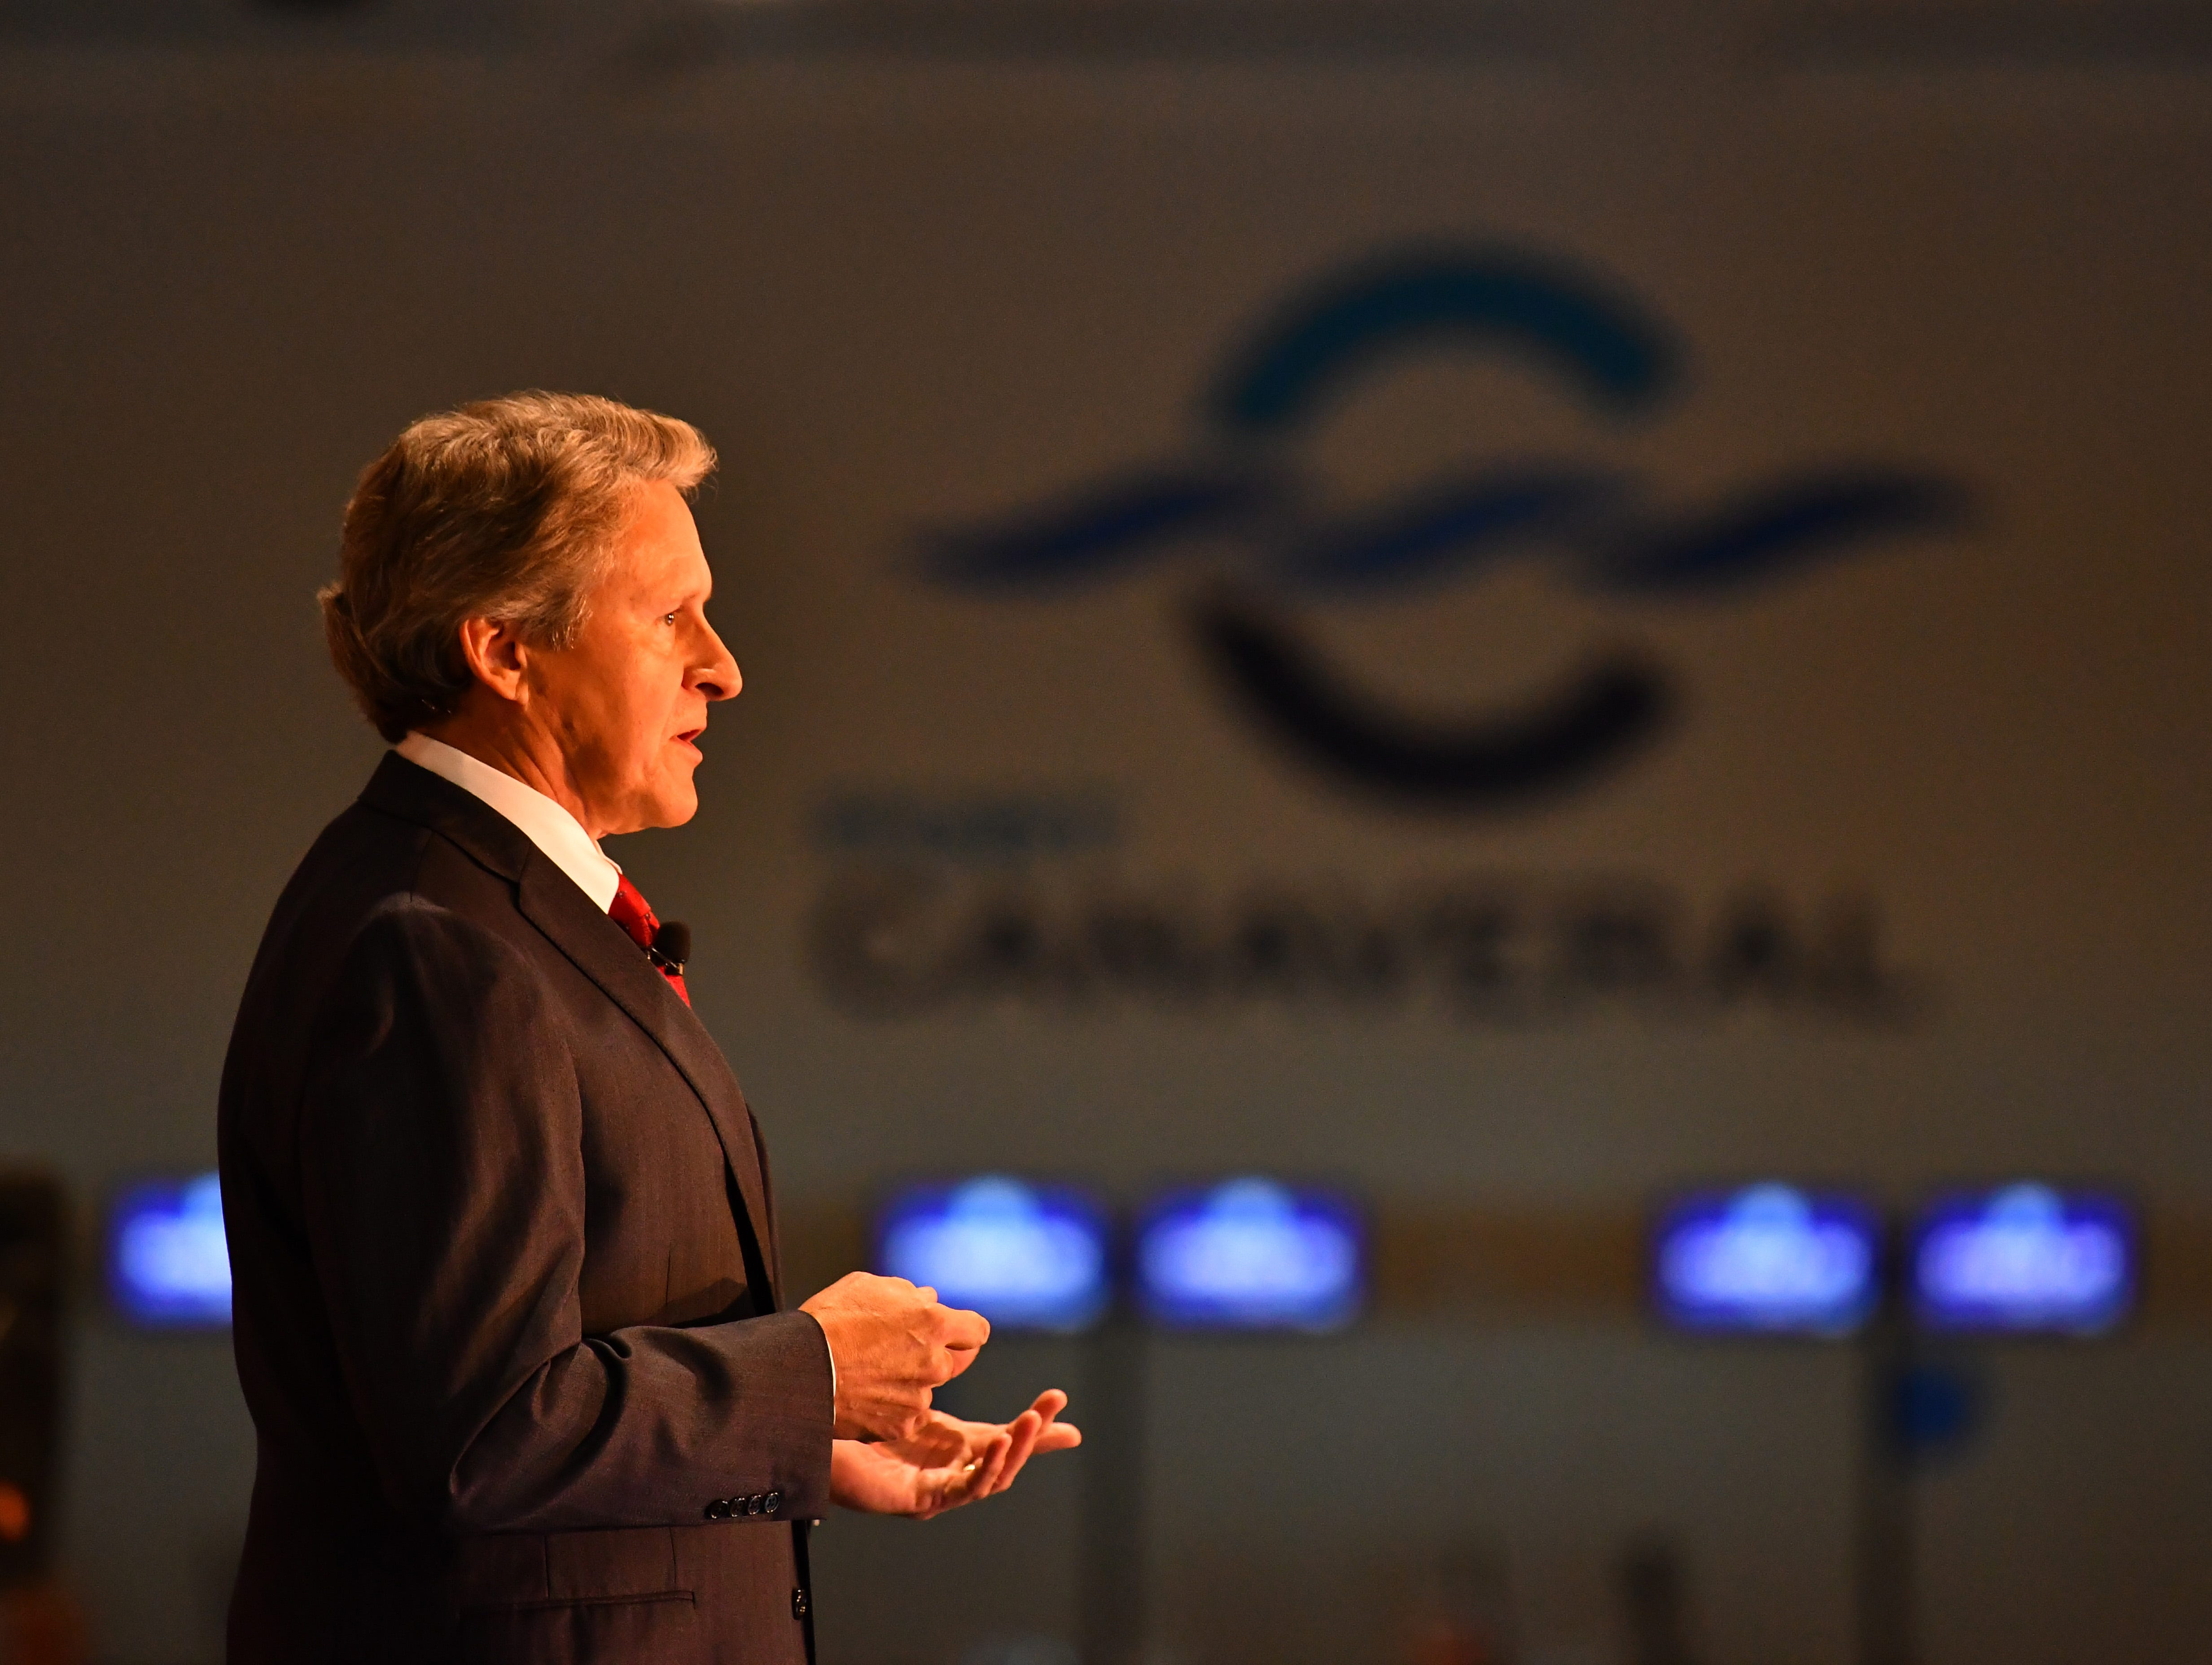 John Murray, CEO of Port Canaveral, gave a very positive State of the Port Wednesday afternoon in Cruise Terminal 1, celebrating the 65th anniversary of the port and looking to the future.